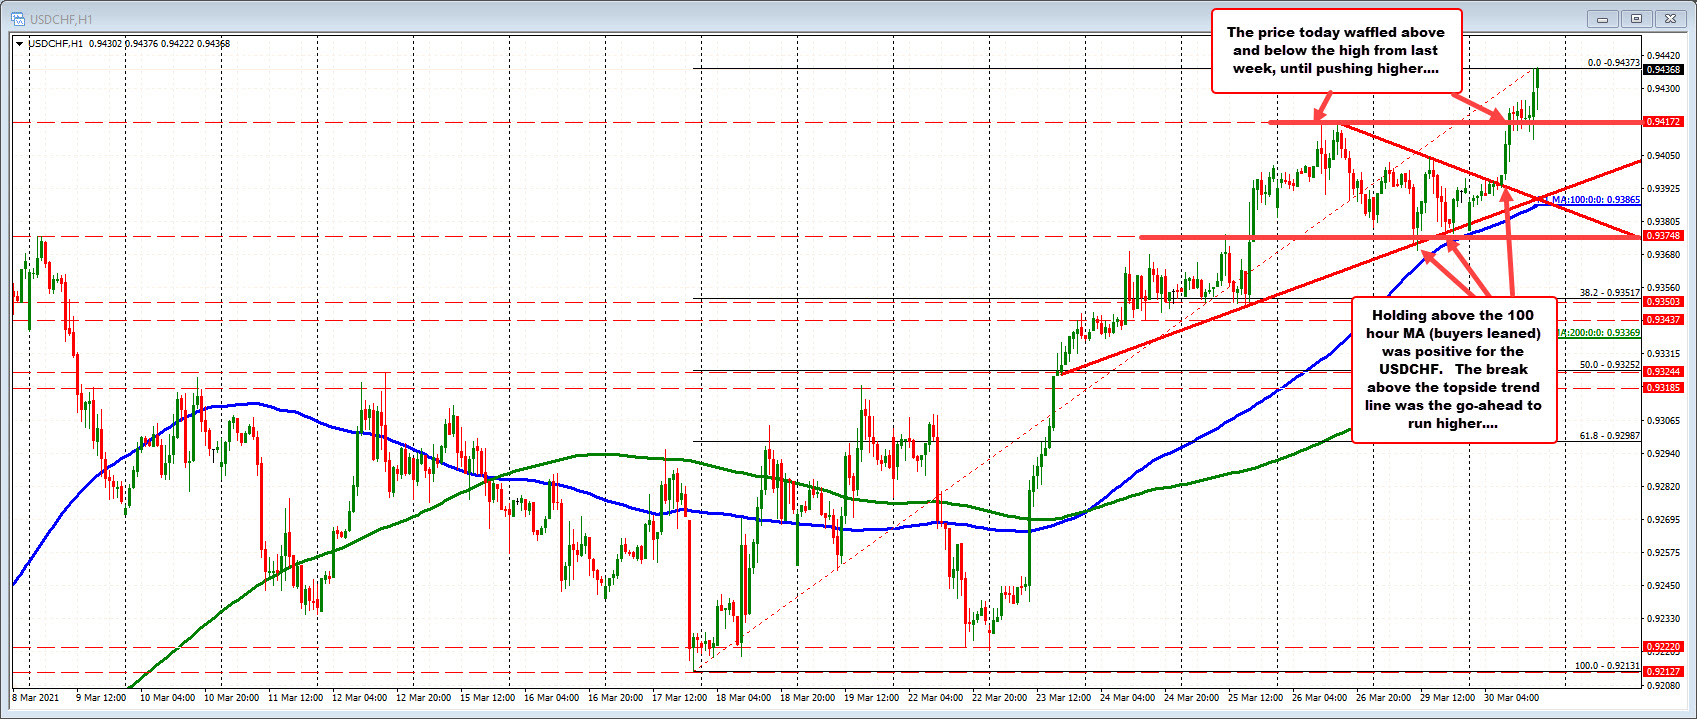 USDCHF follows the trend higher in the USD today